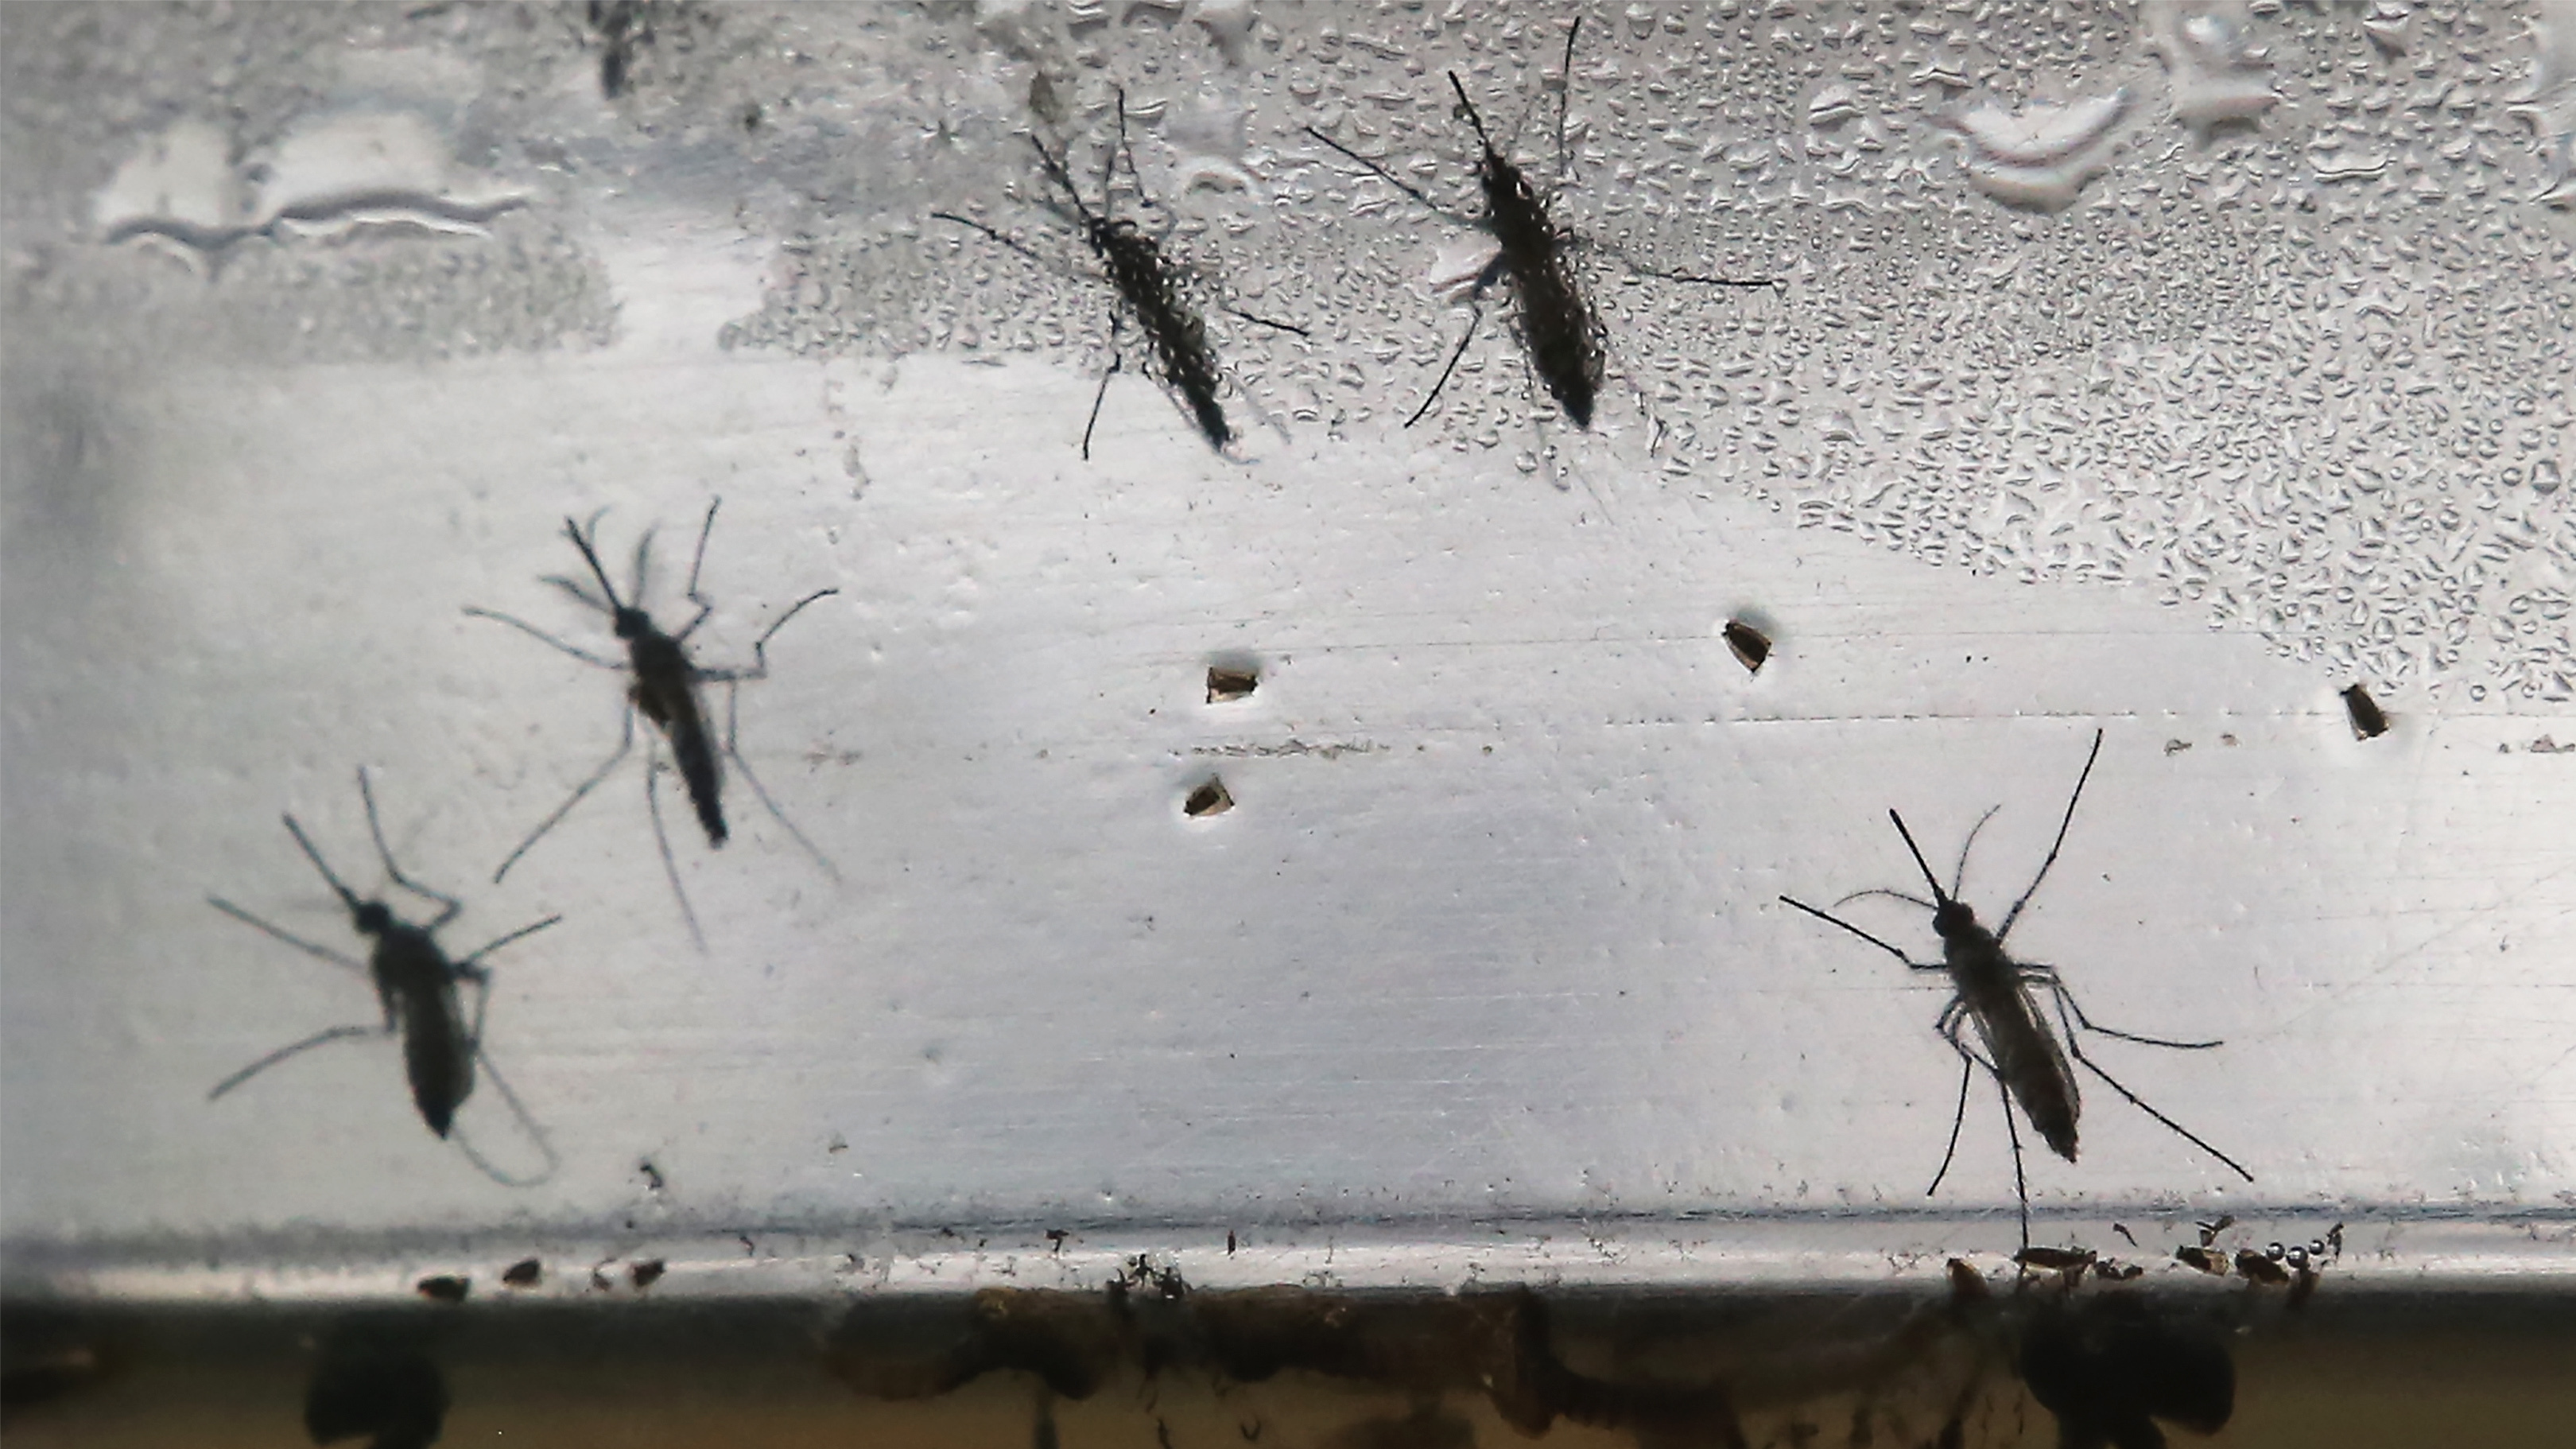 'Debug Fresno:' 20 Million Sterile Mosquitoes to be Released in California